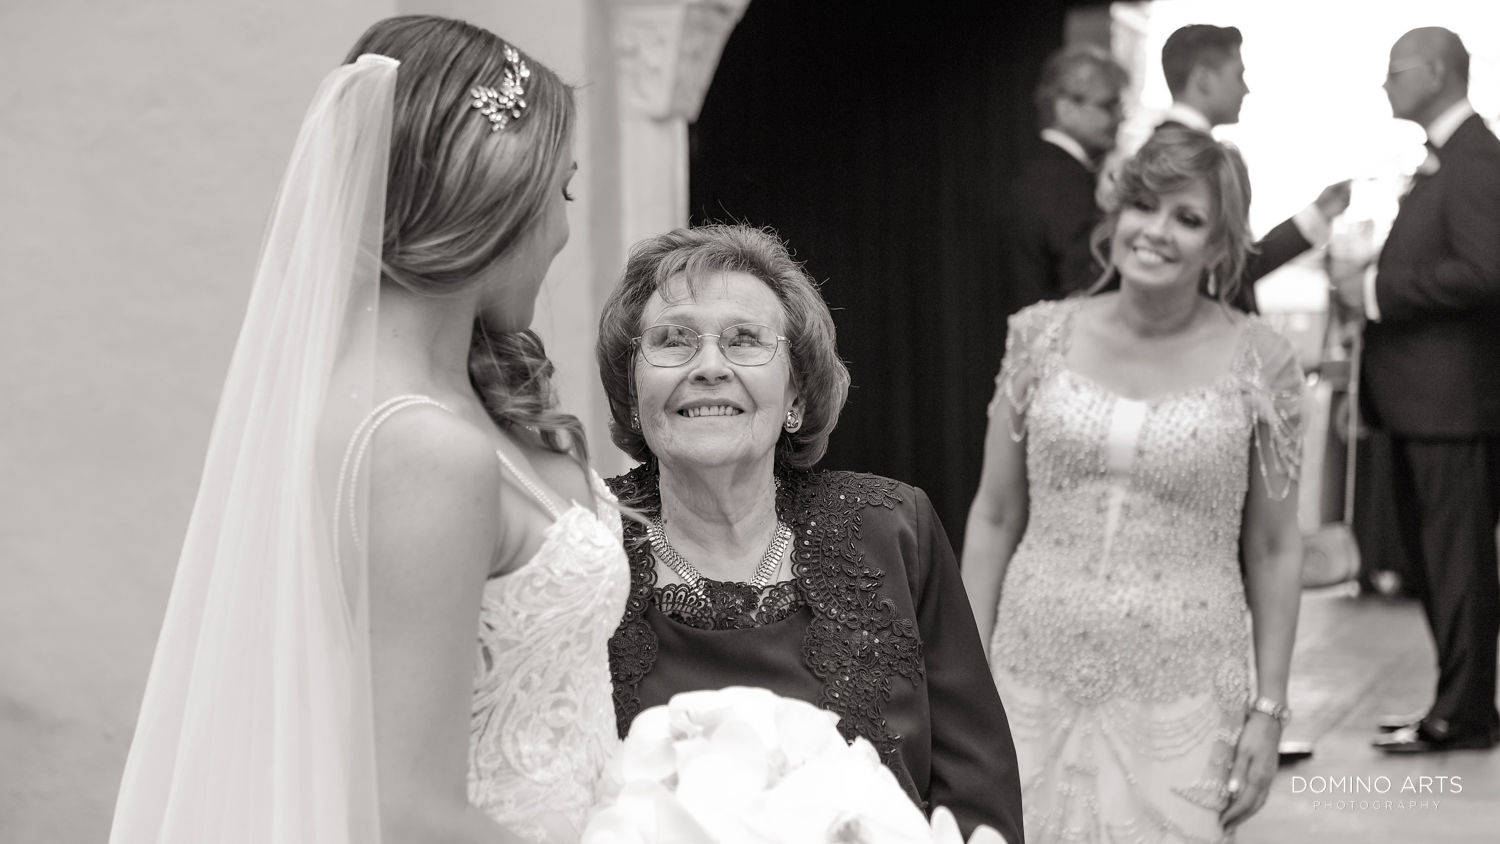 A three-generation picture of a bride with her mom and grandmother at Boca Raton Resort